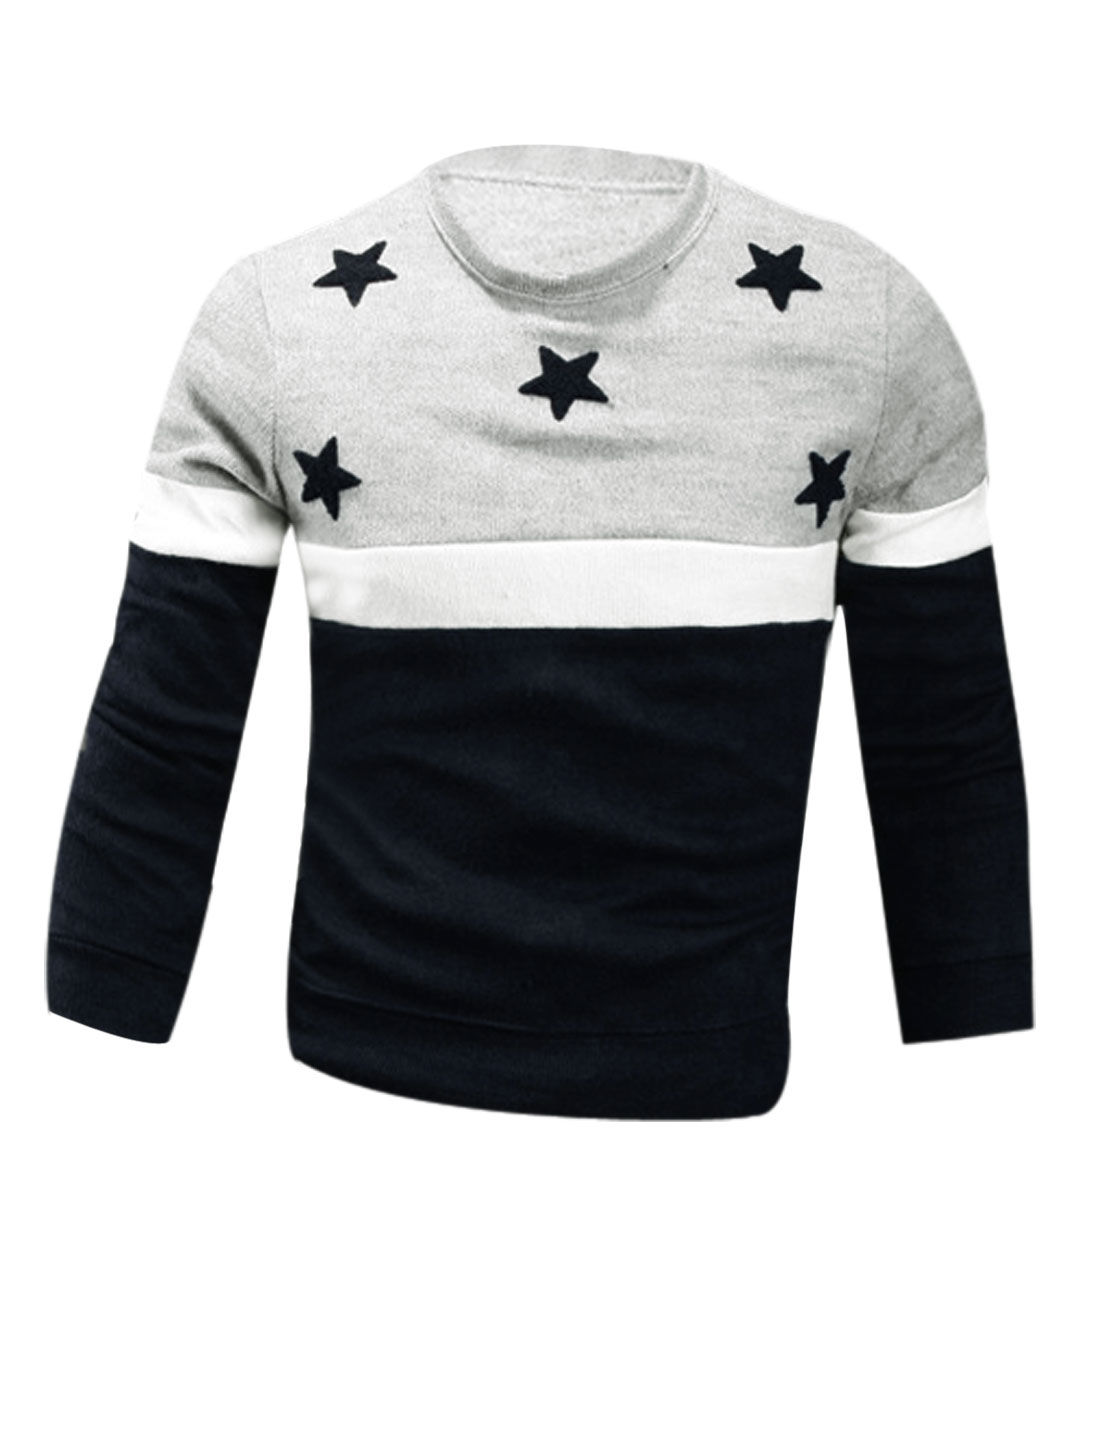 Men Navy Blue Light Gray Round Neck Stars Applique Color Bock Knit Shirt M